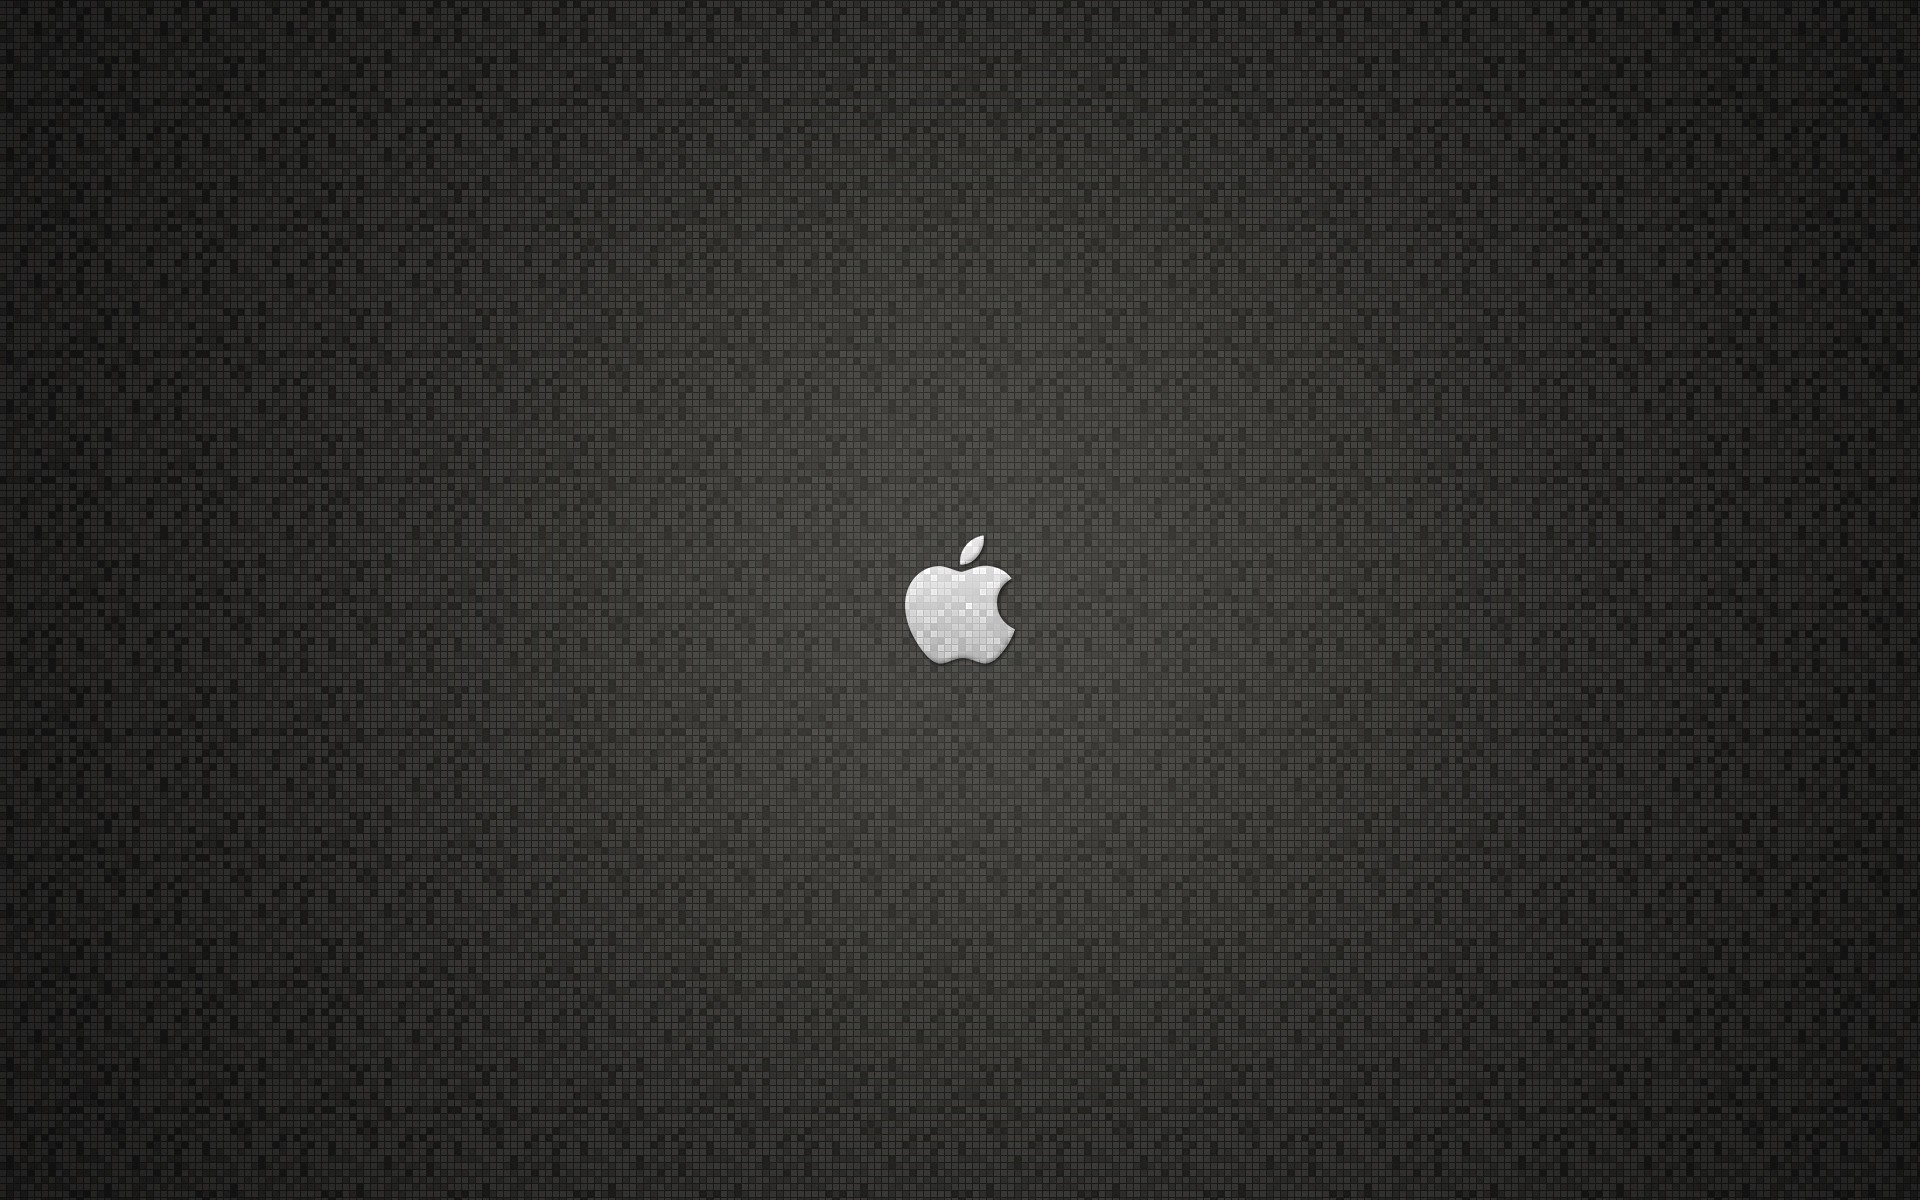 grey apple logo wallpapers 28720 1920x1200